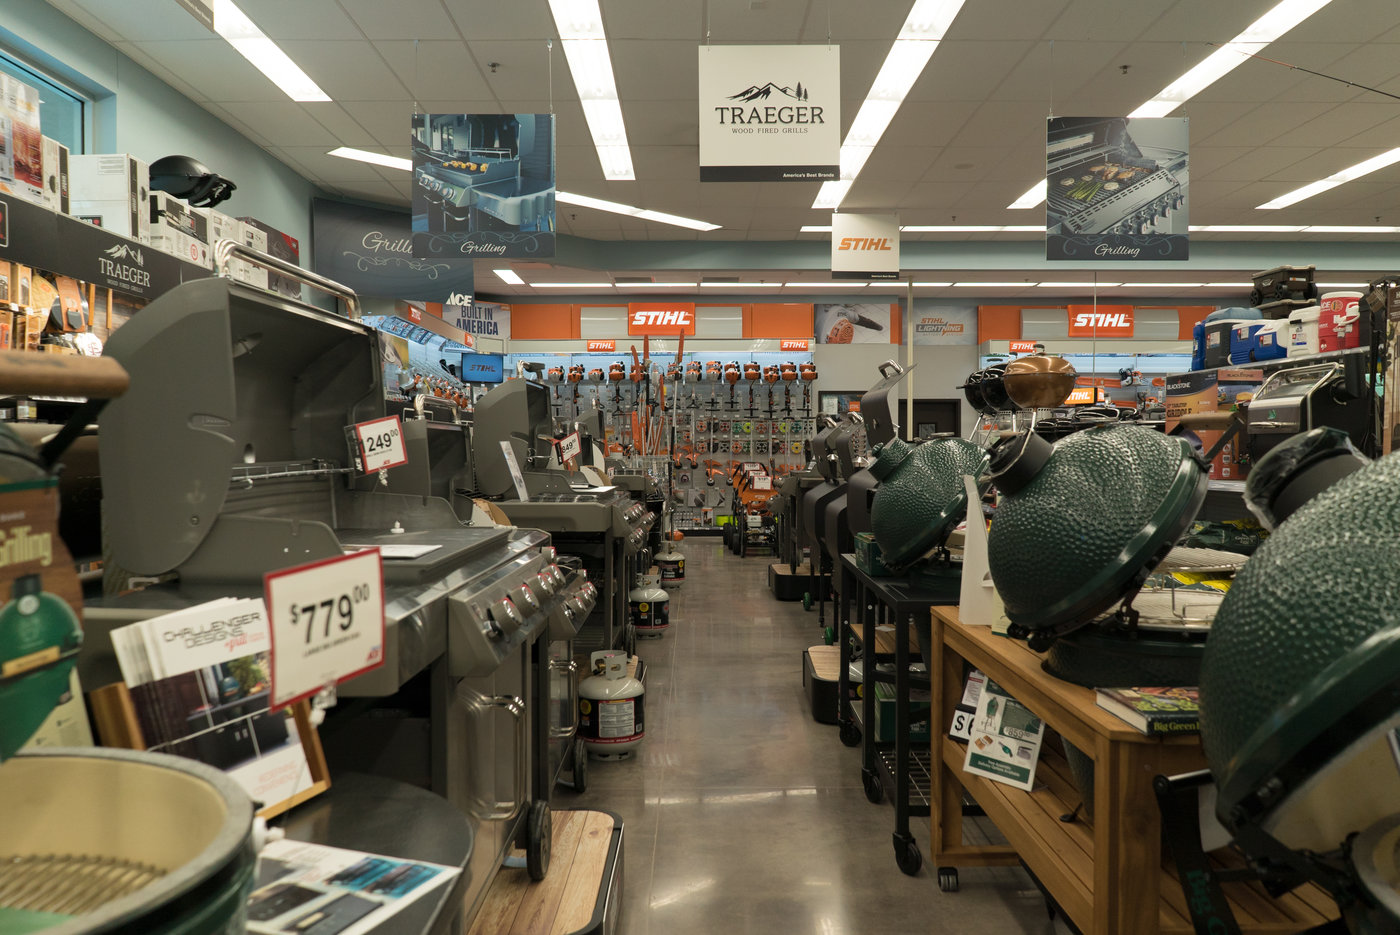 As soon as customers walk in the store they can see it is a destination for grills.